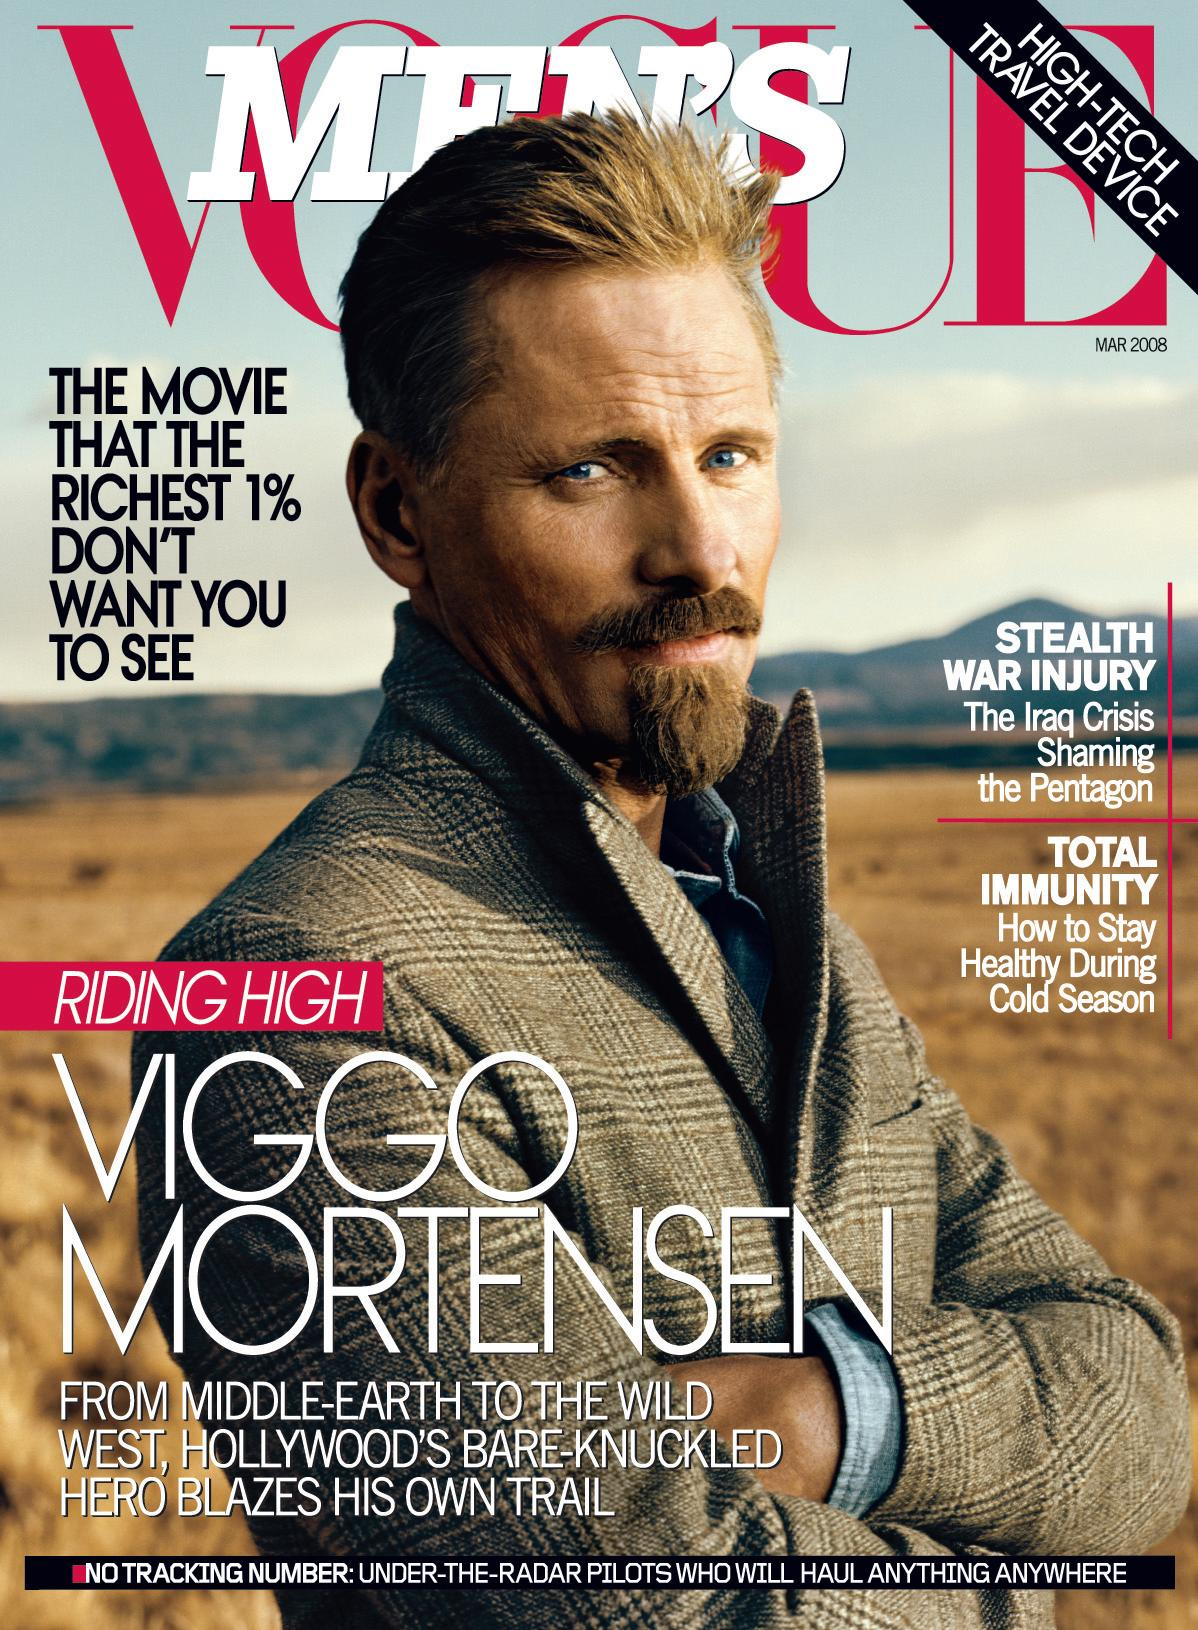 Vogue S Covers Gigi Hadid: Viggo Mortensen Compares The Oscars To Politics In The